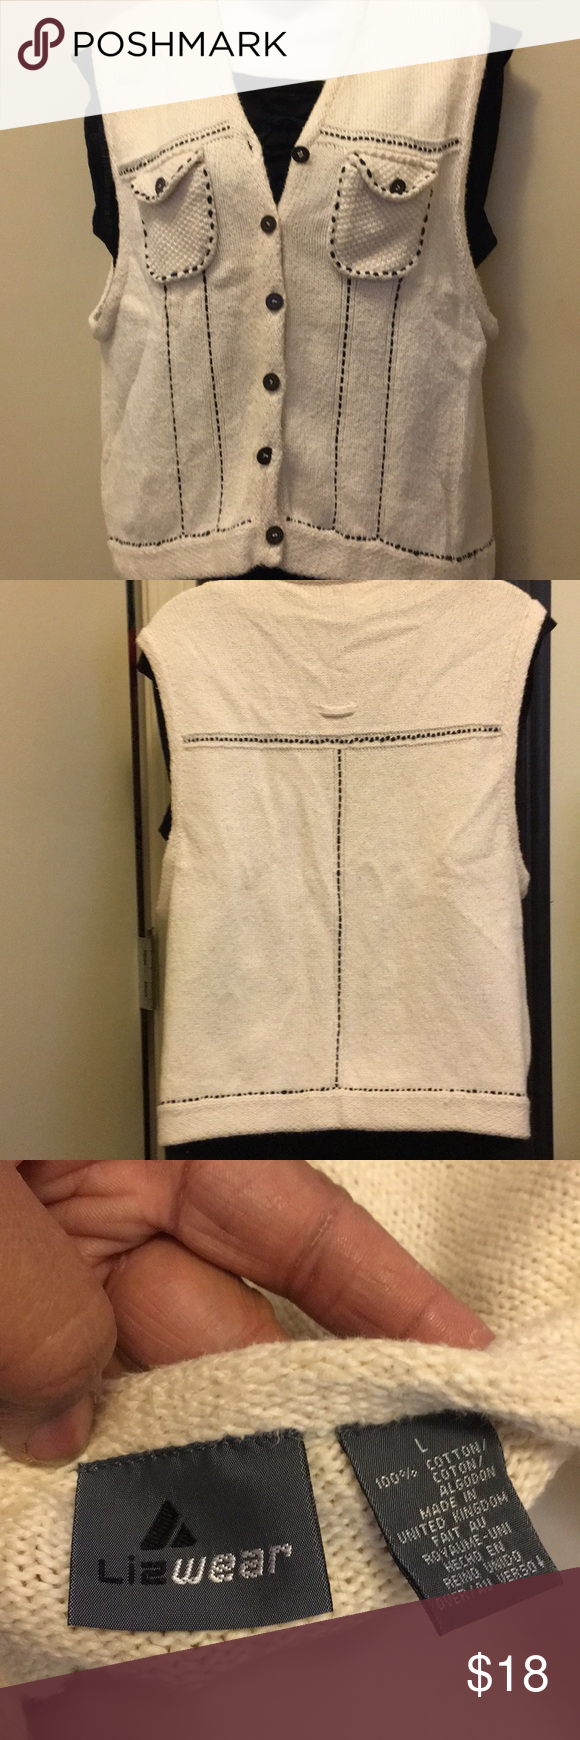 Liz Wear Sweater Vest 100% Cotton Size Large | Liz claiborne ...